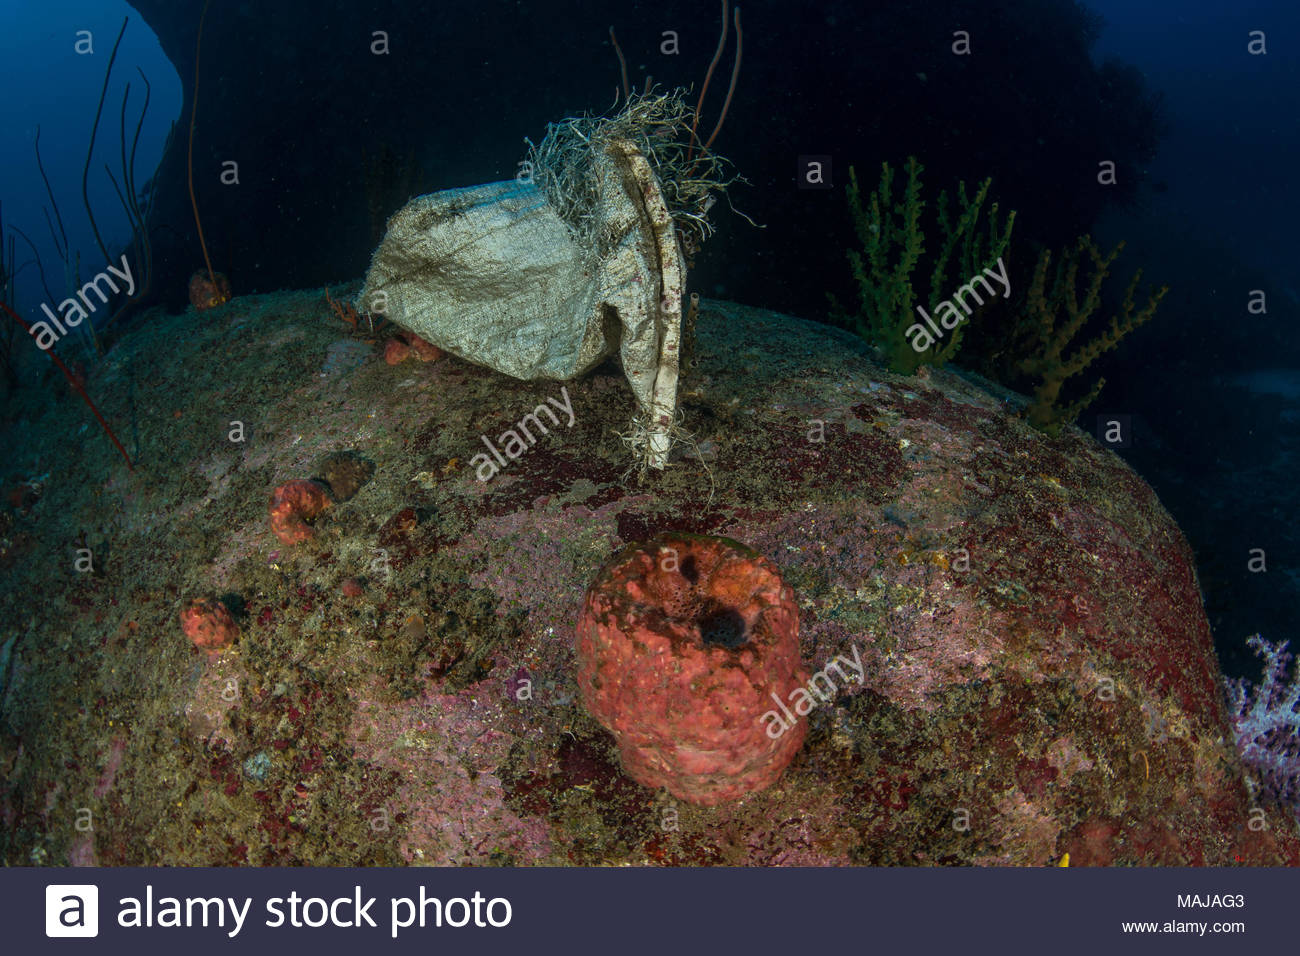 Rubbish underwater and sea pollution - Stock Image